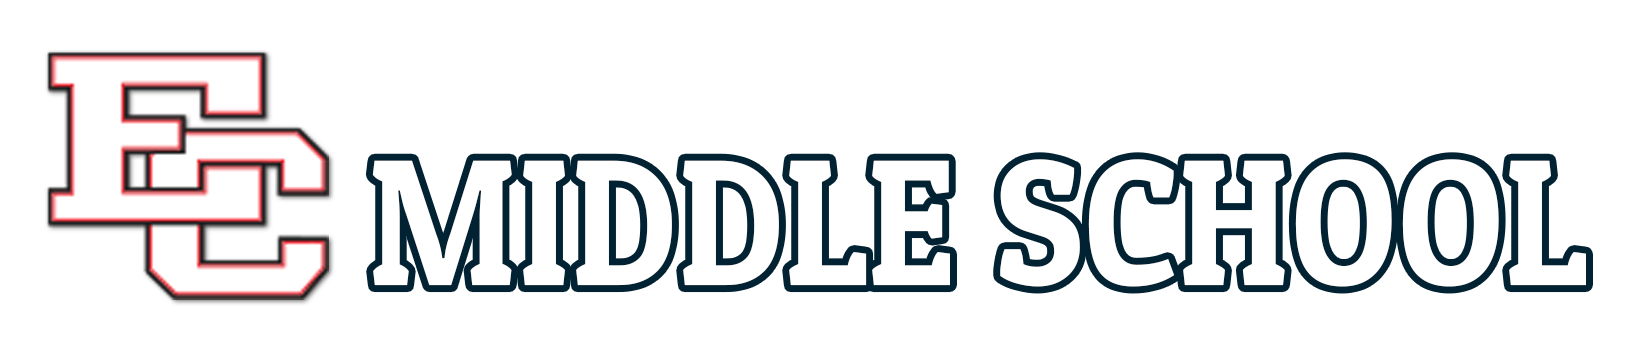 El Campo Middle School Logo